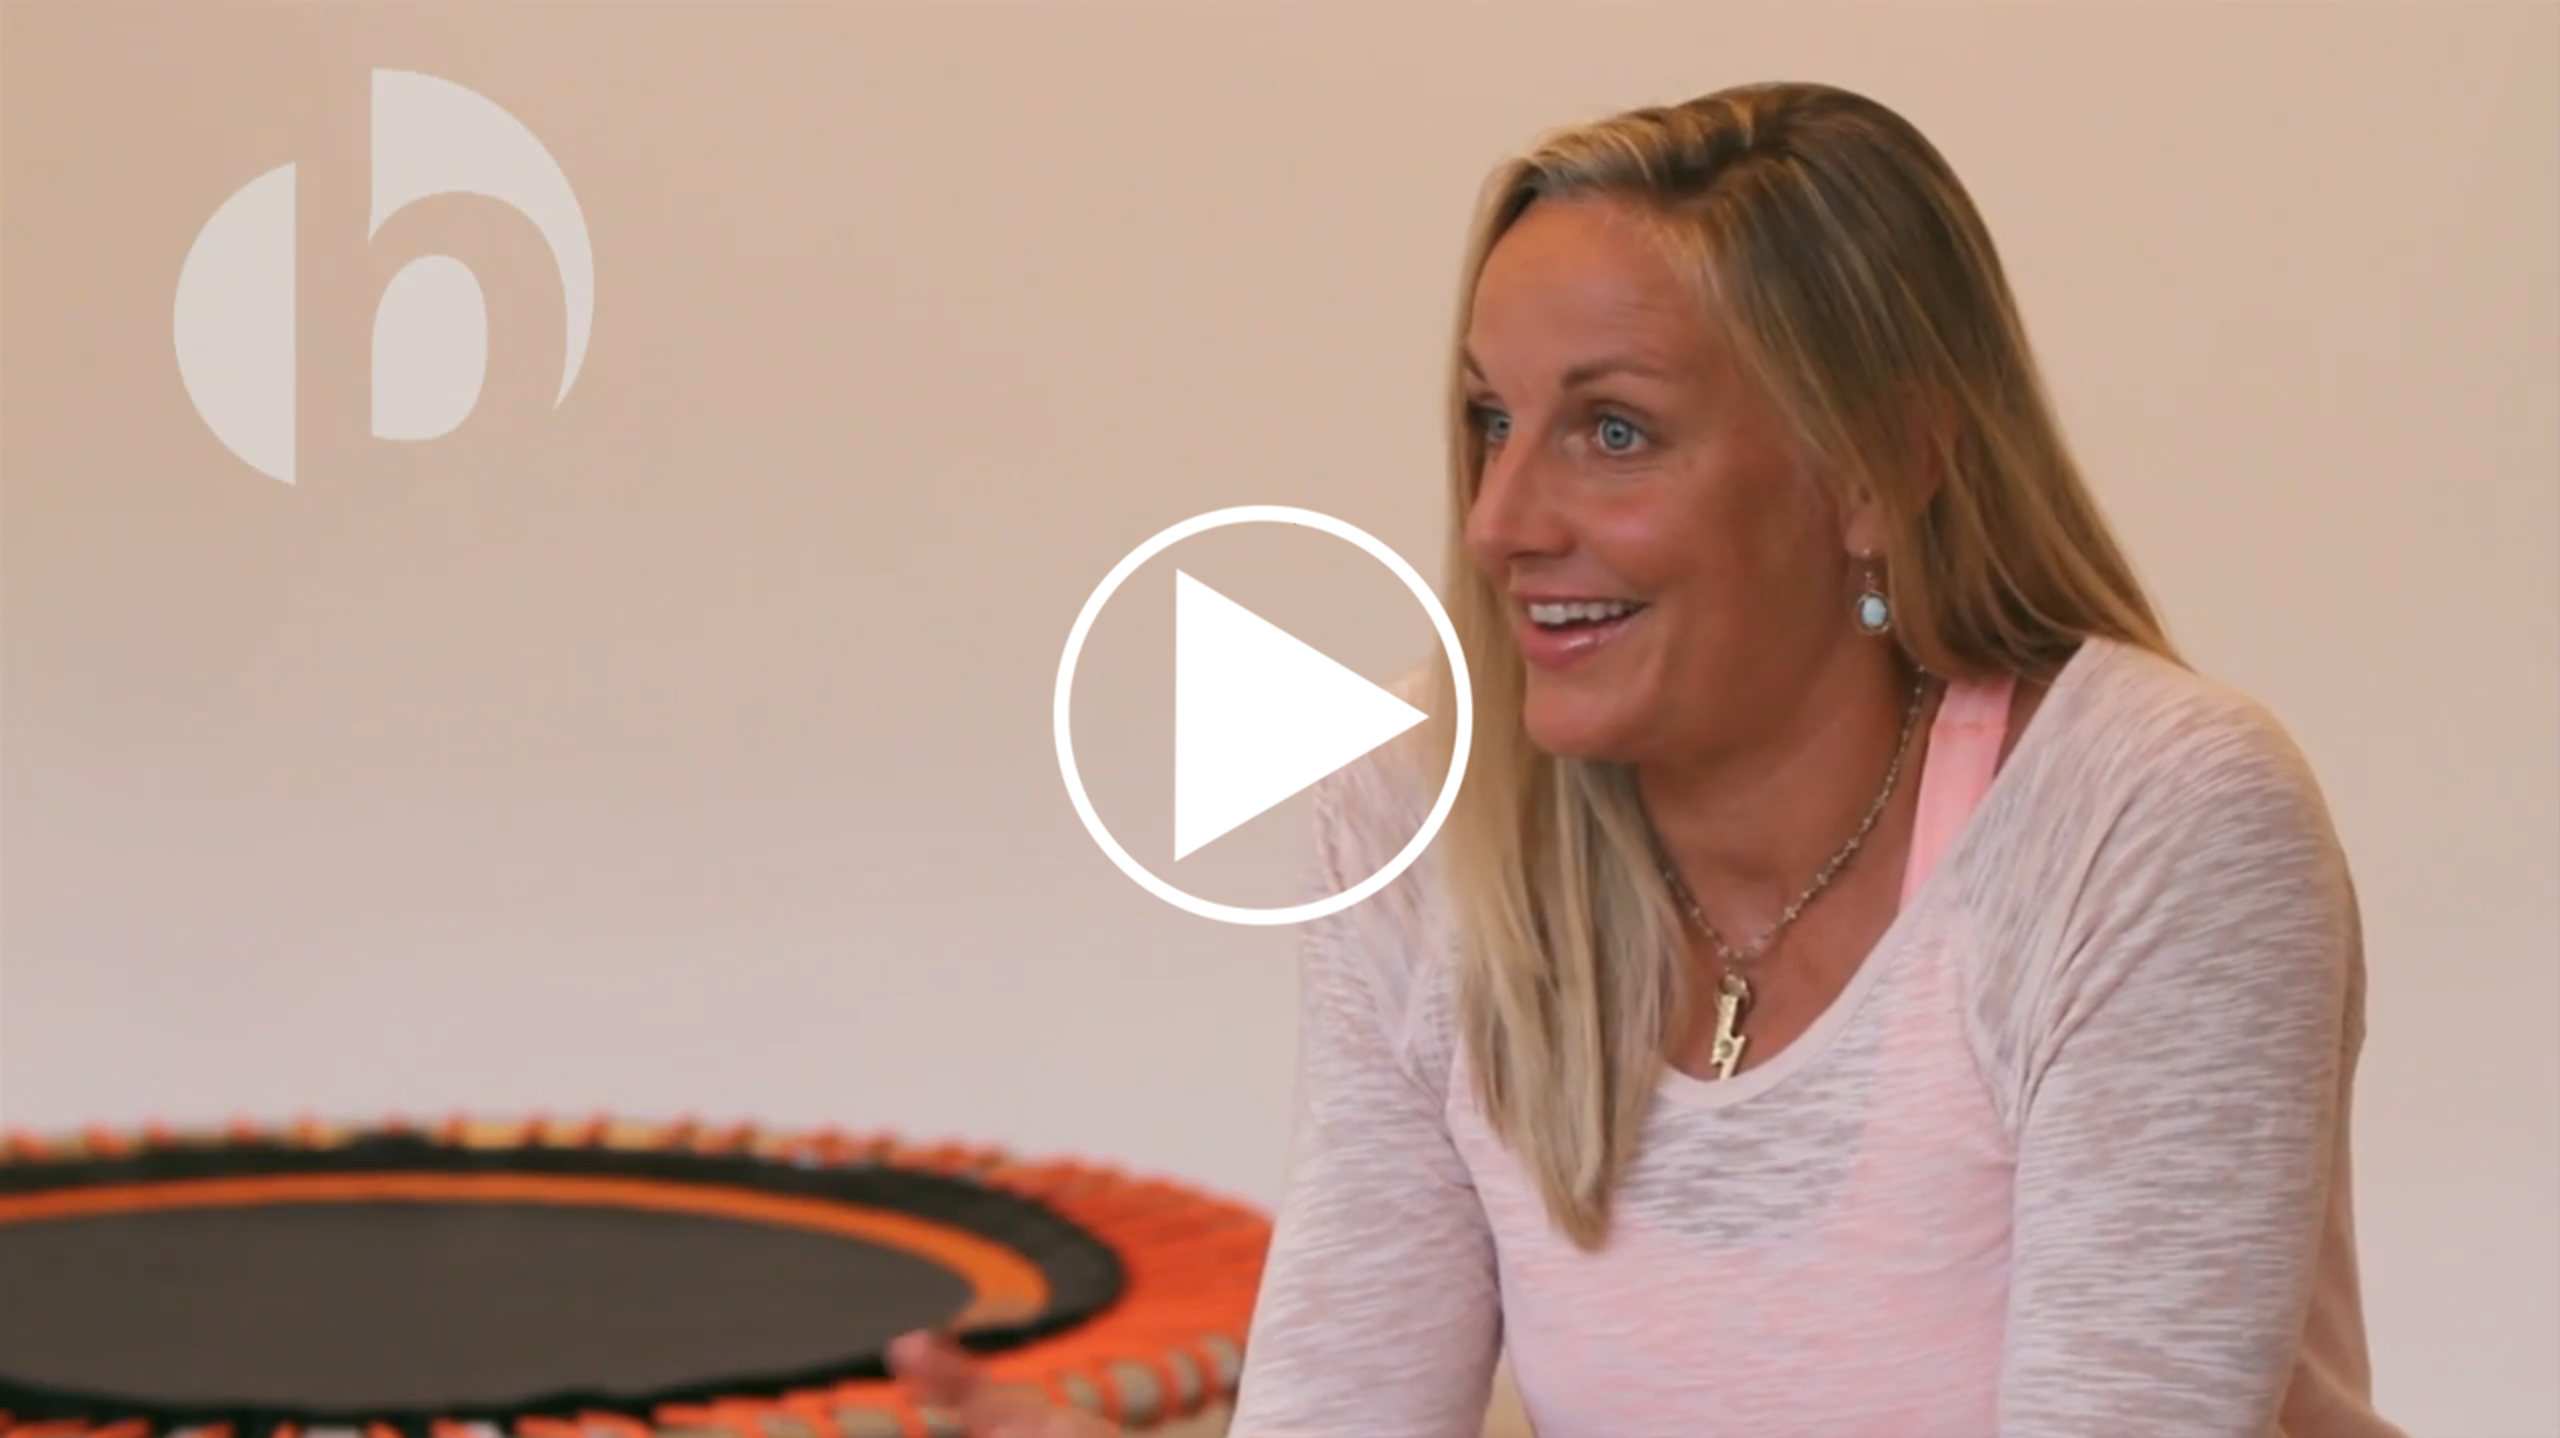 Olympic Medalist Catherine Garceau about the bellicon